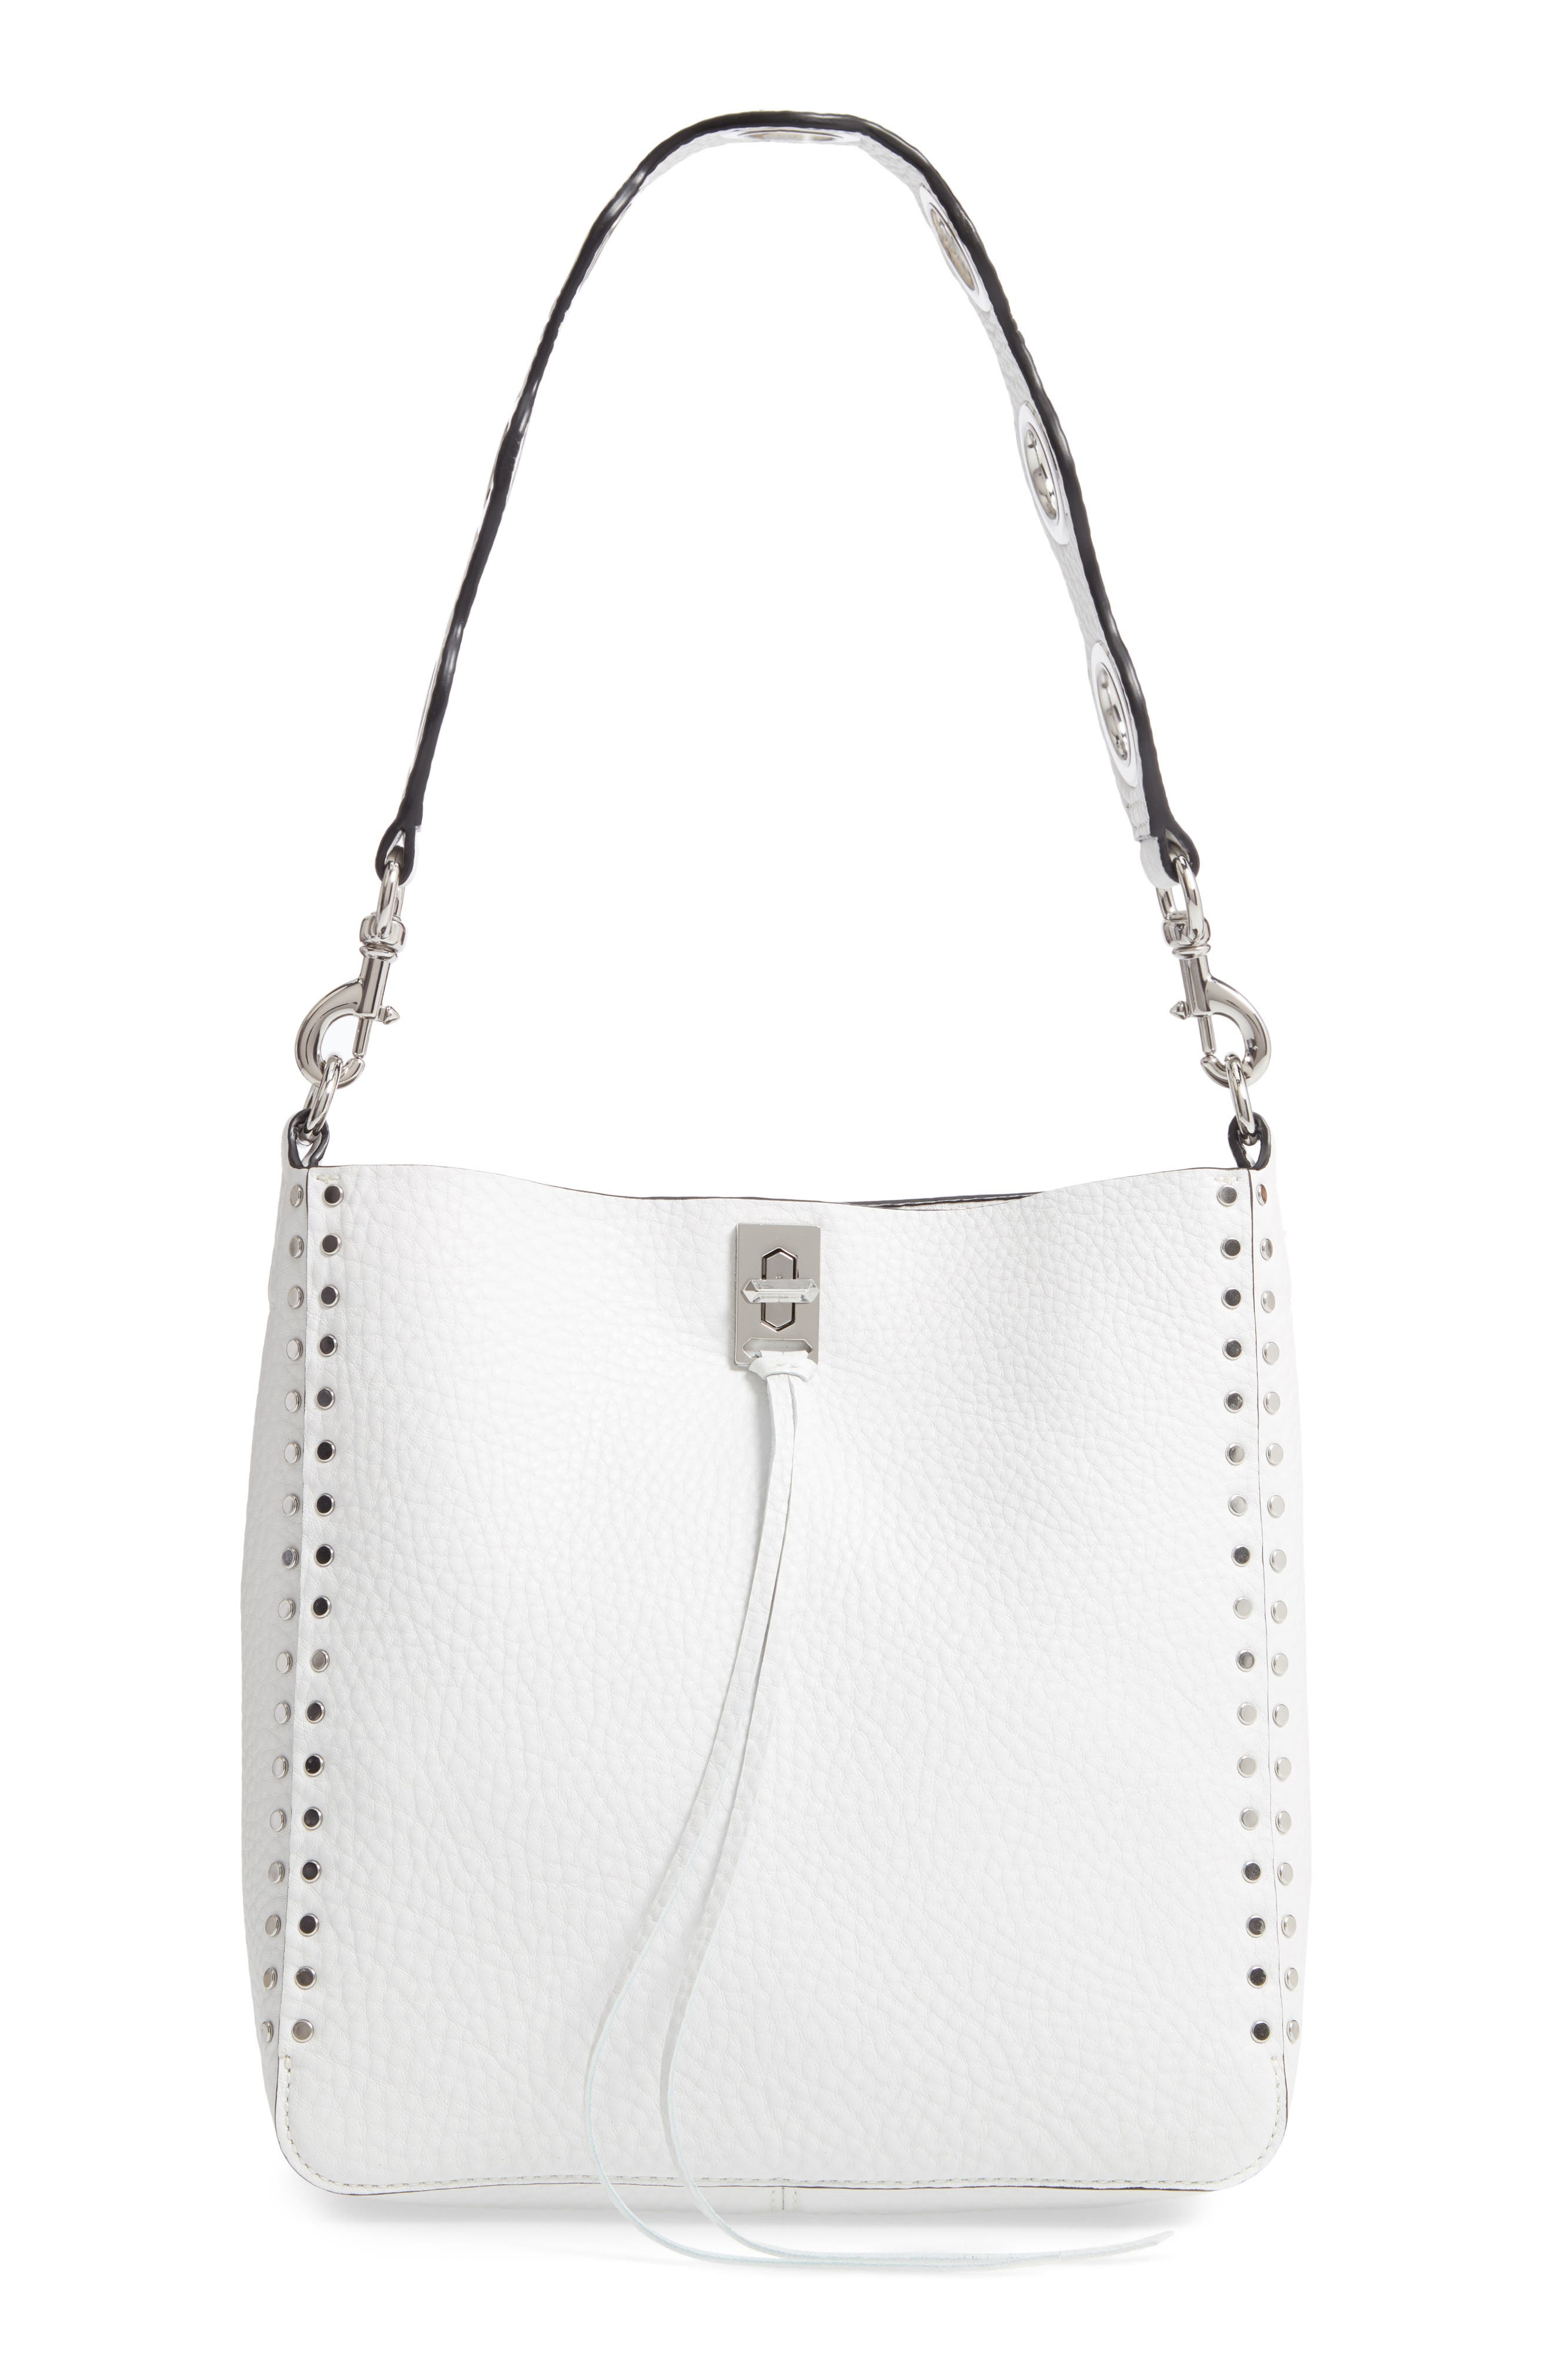 REBECCA MINKOFF Small Studded Leather Feed Bag, Main, color, OPTIC WHITE